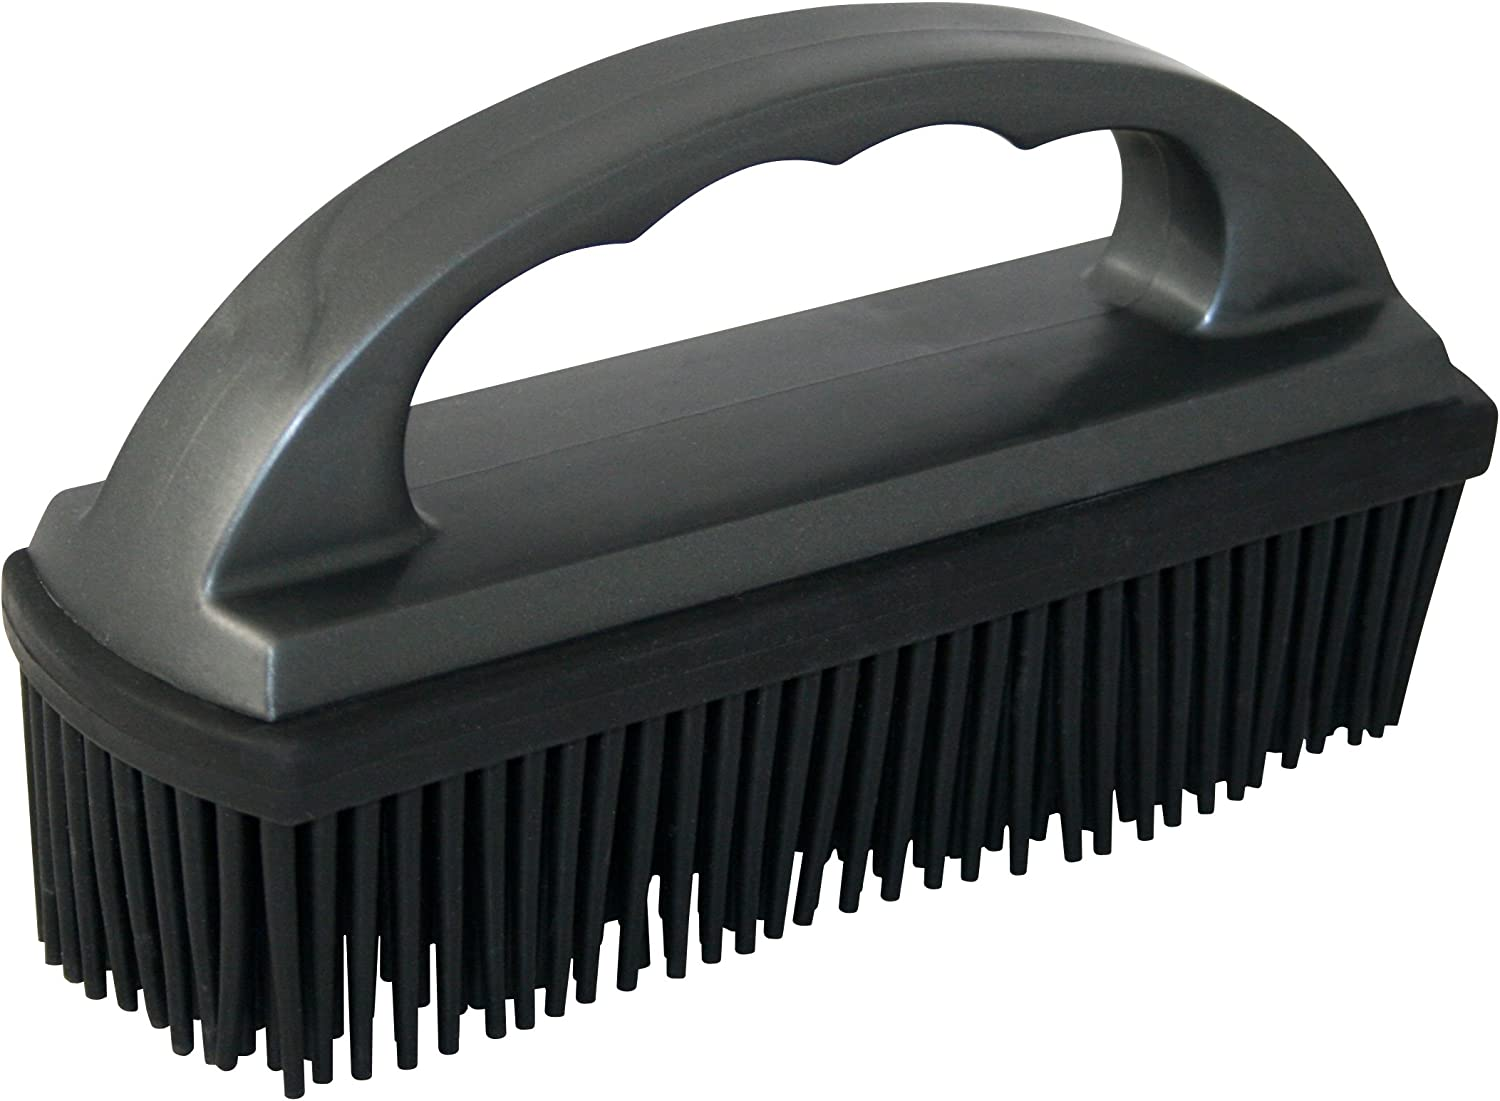 Carrand 93112 Lint and Hair Removal Brush, Single: Automotive